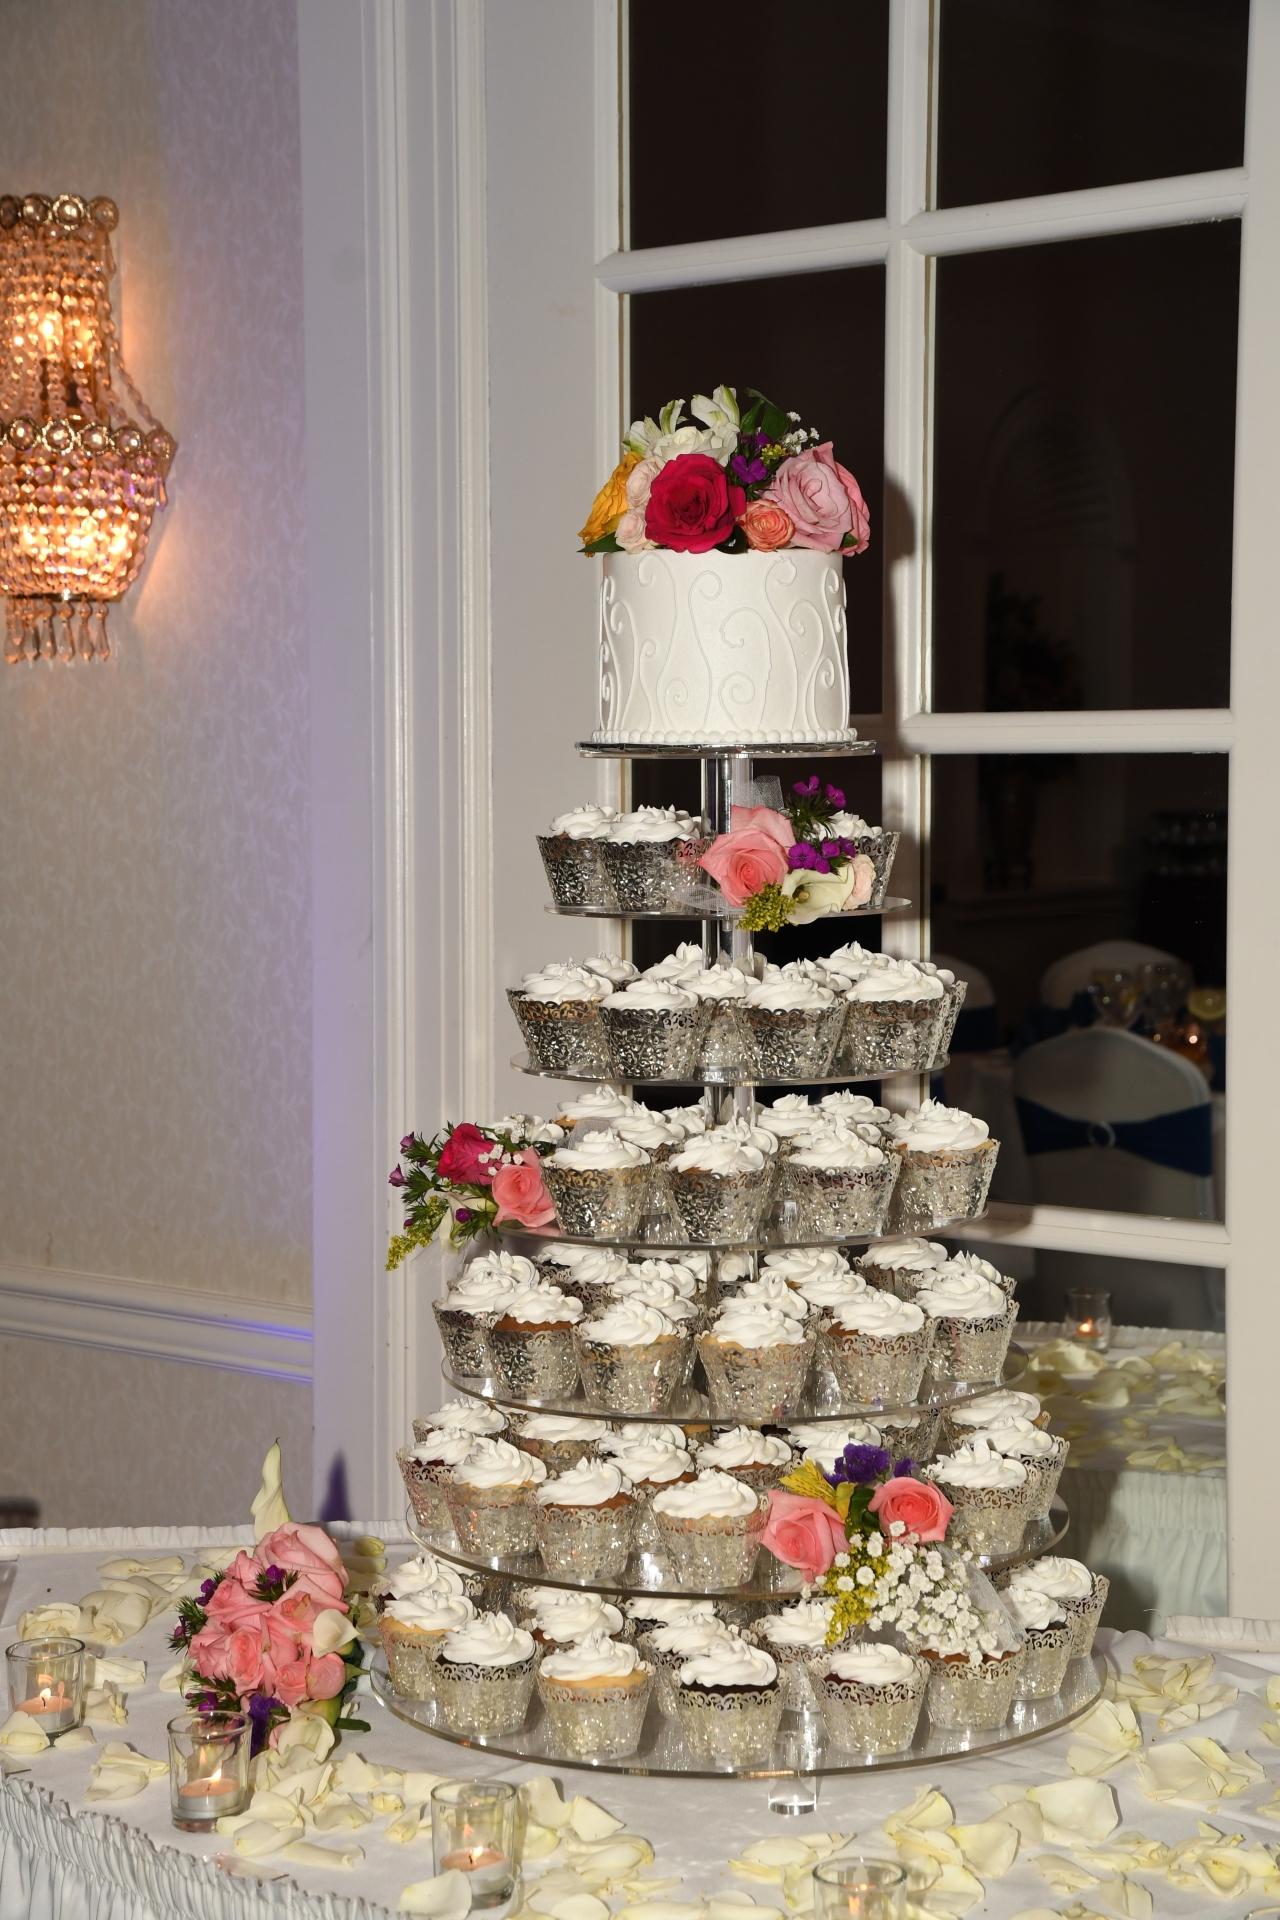 Silver cupcake tower with fresh flowers